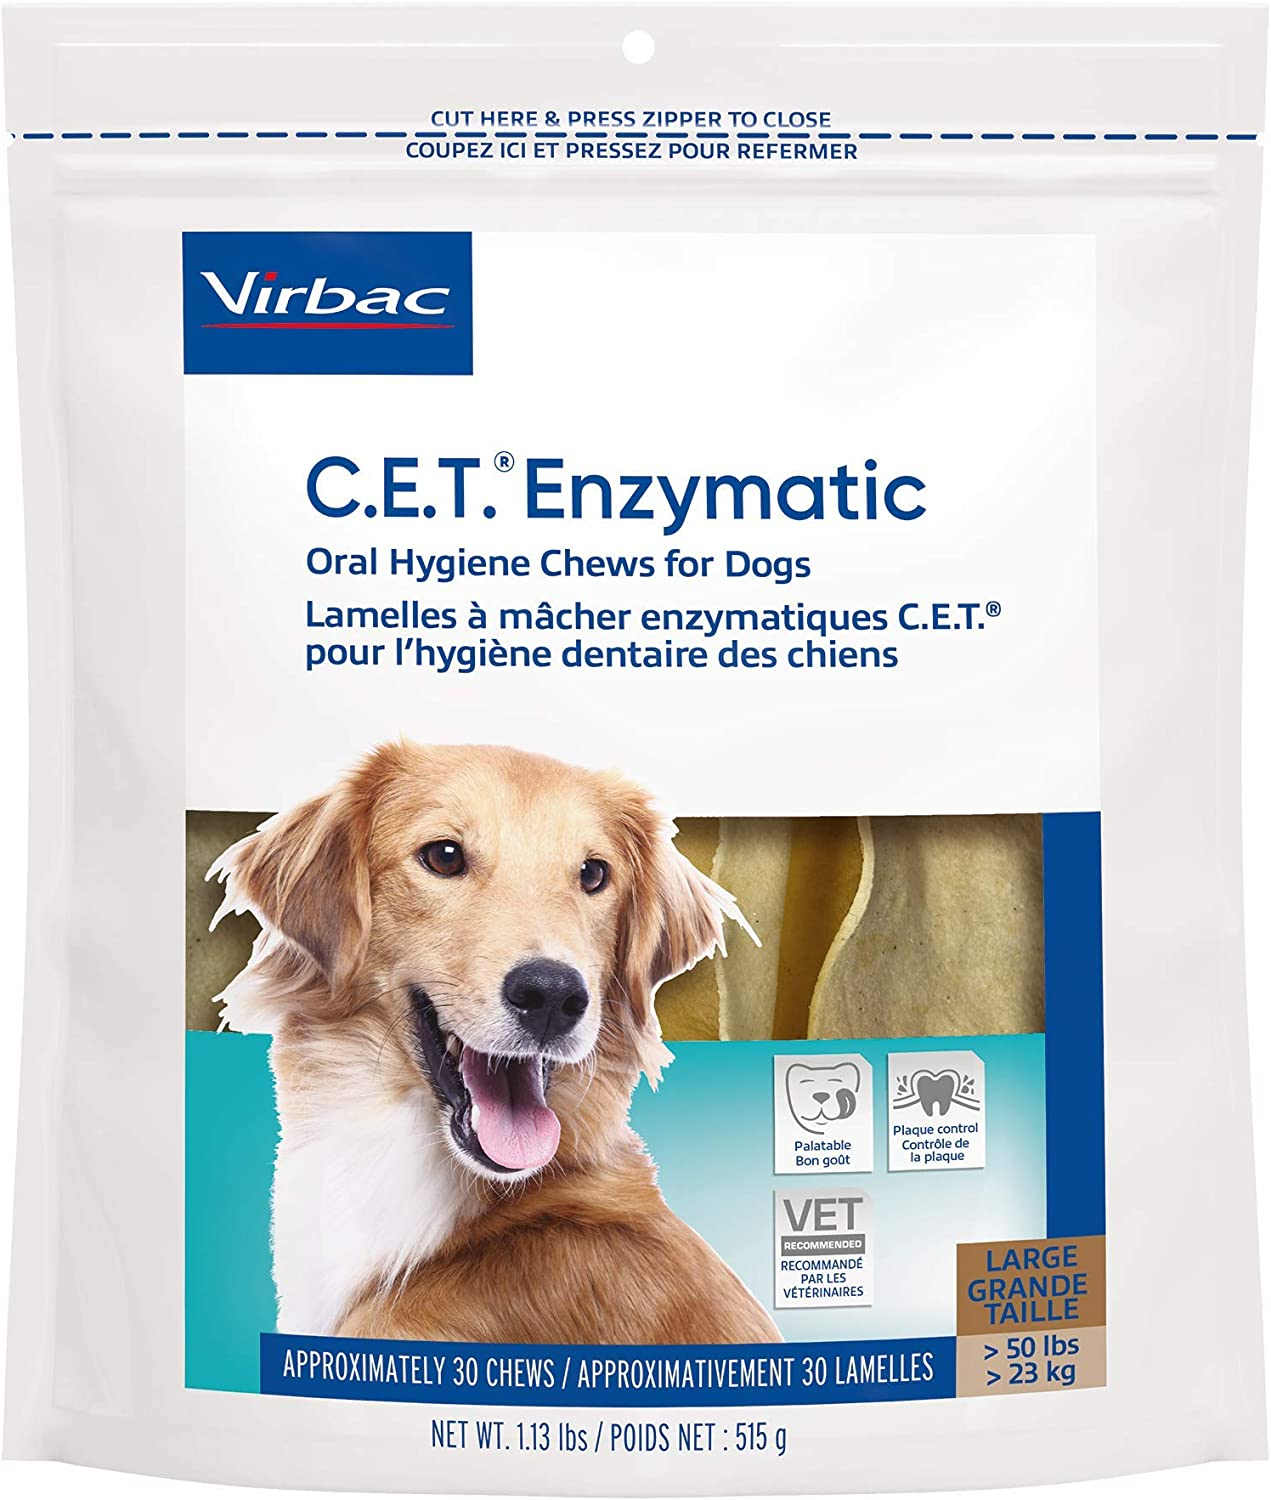 Virbac CET Enzymatic Oral Hygiene Chews for Dogs